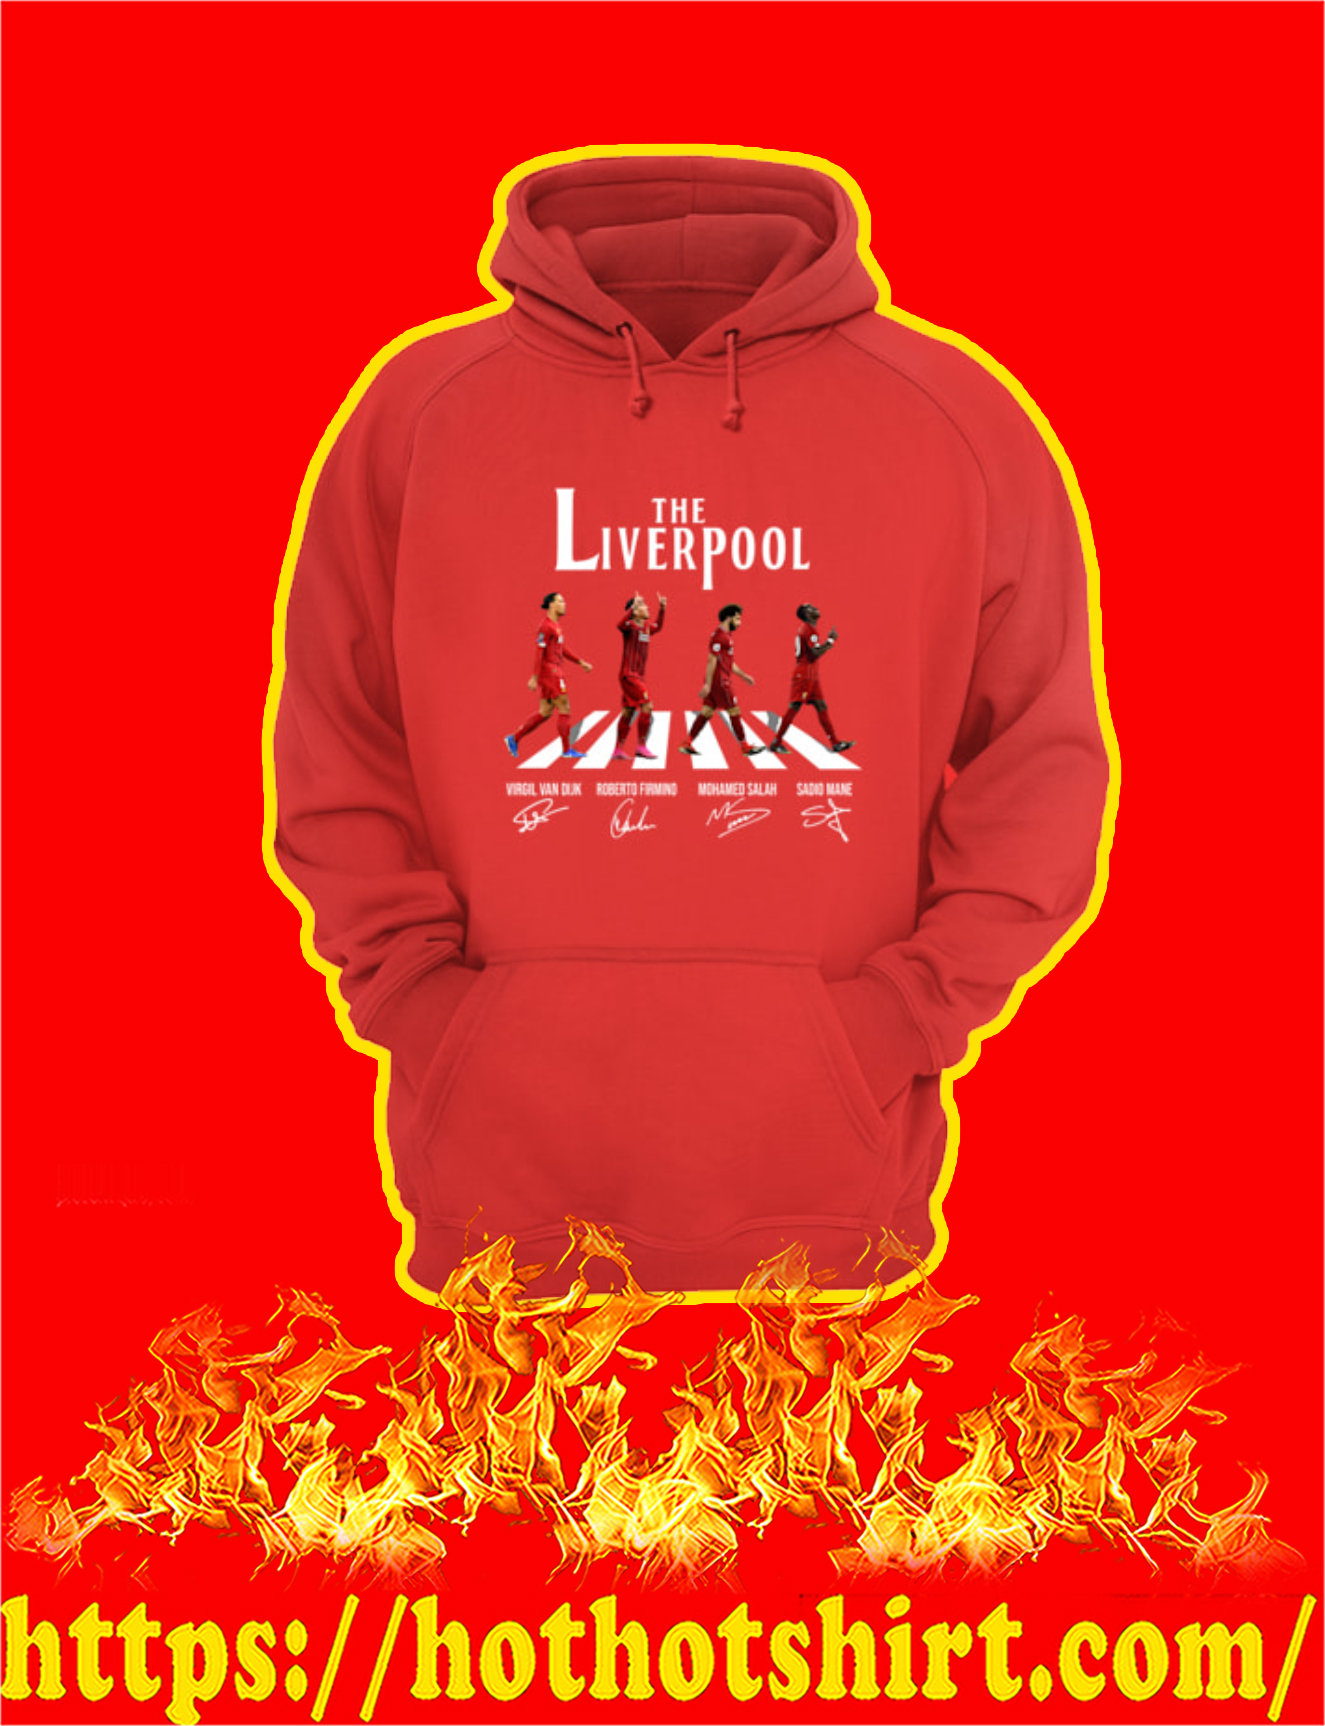 The Liverpool Abbey Road Players Signature Hoodie